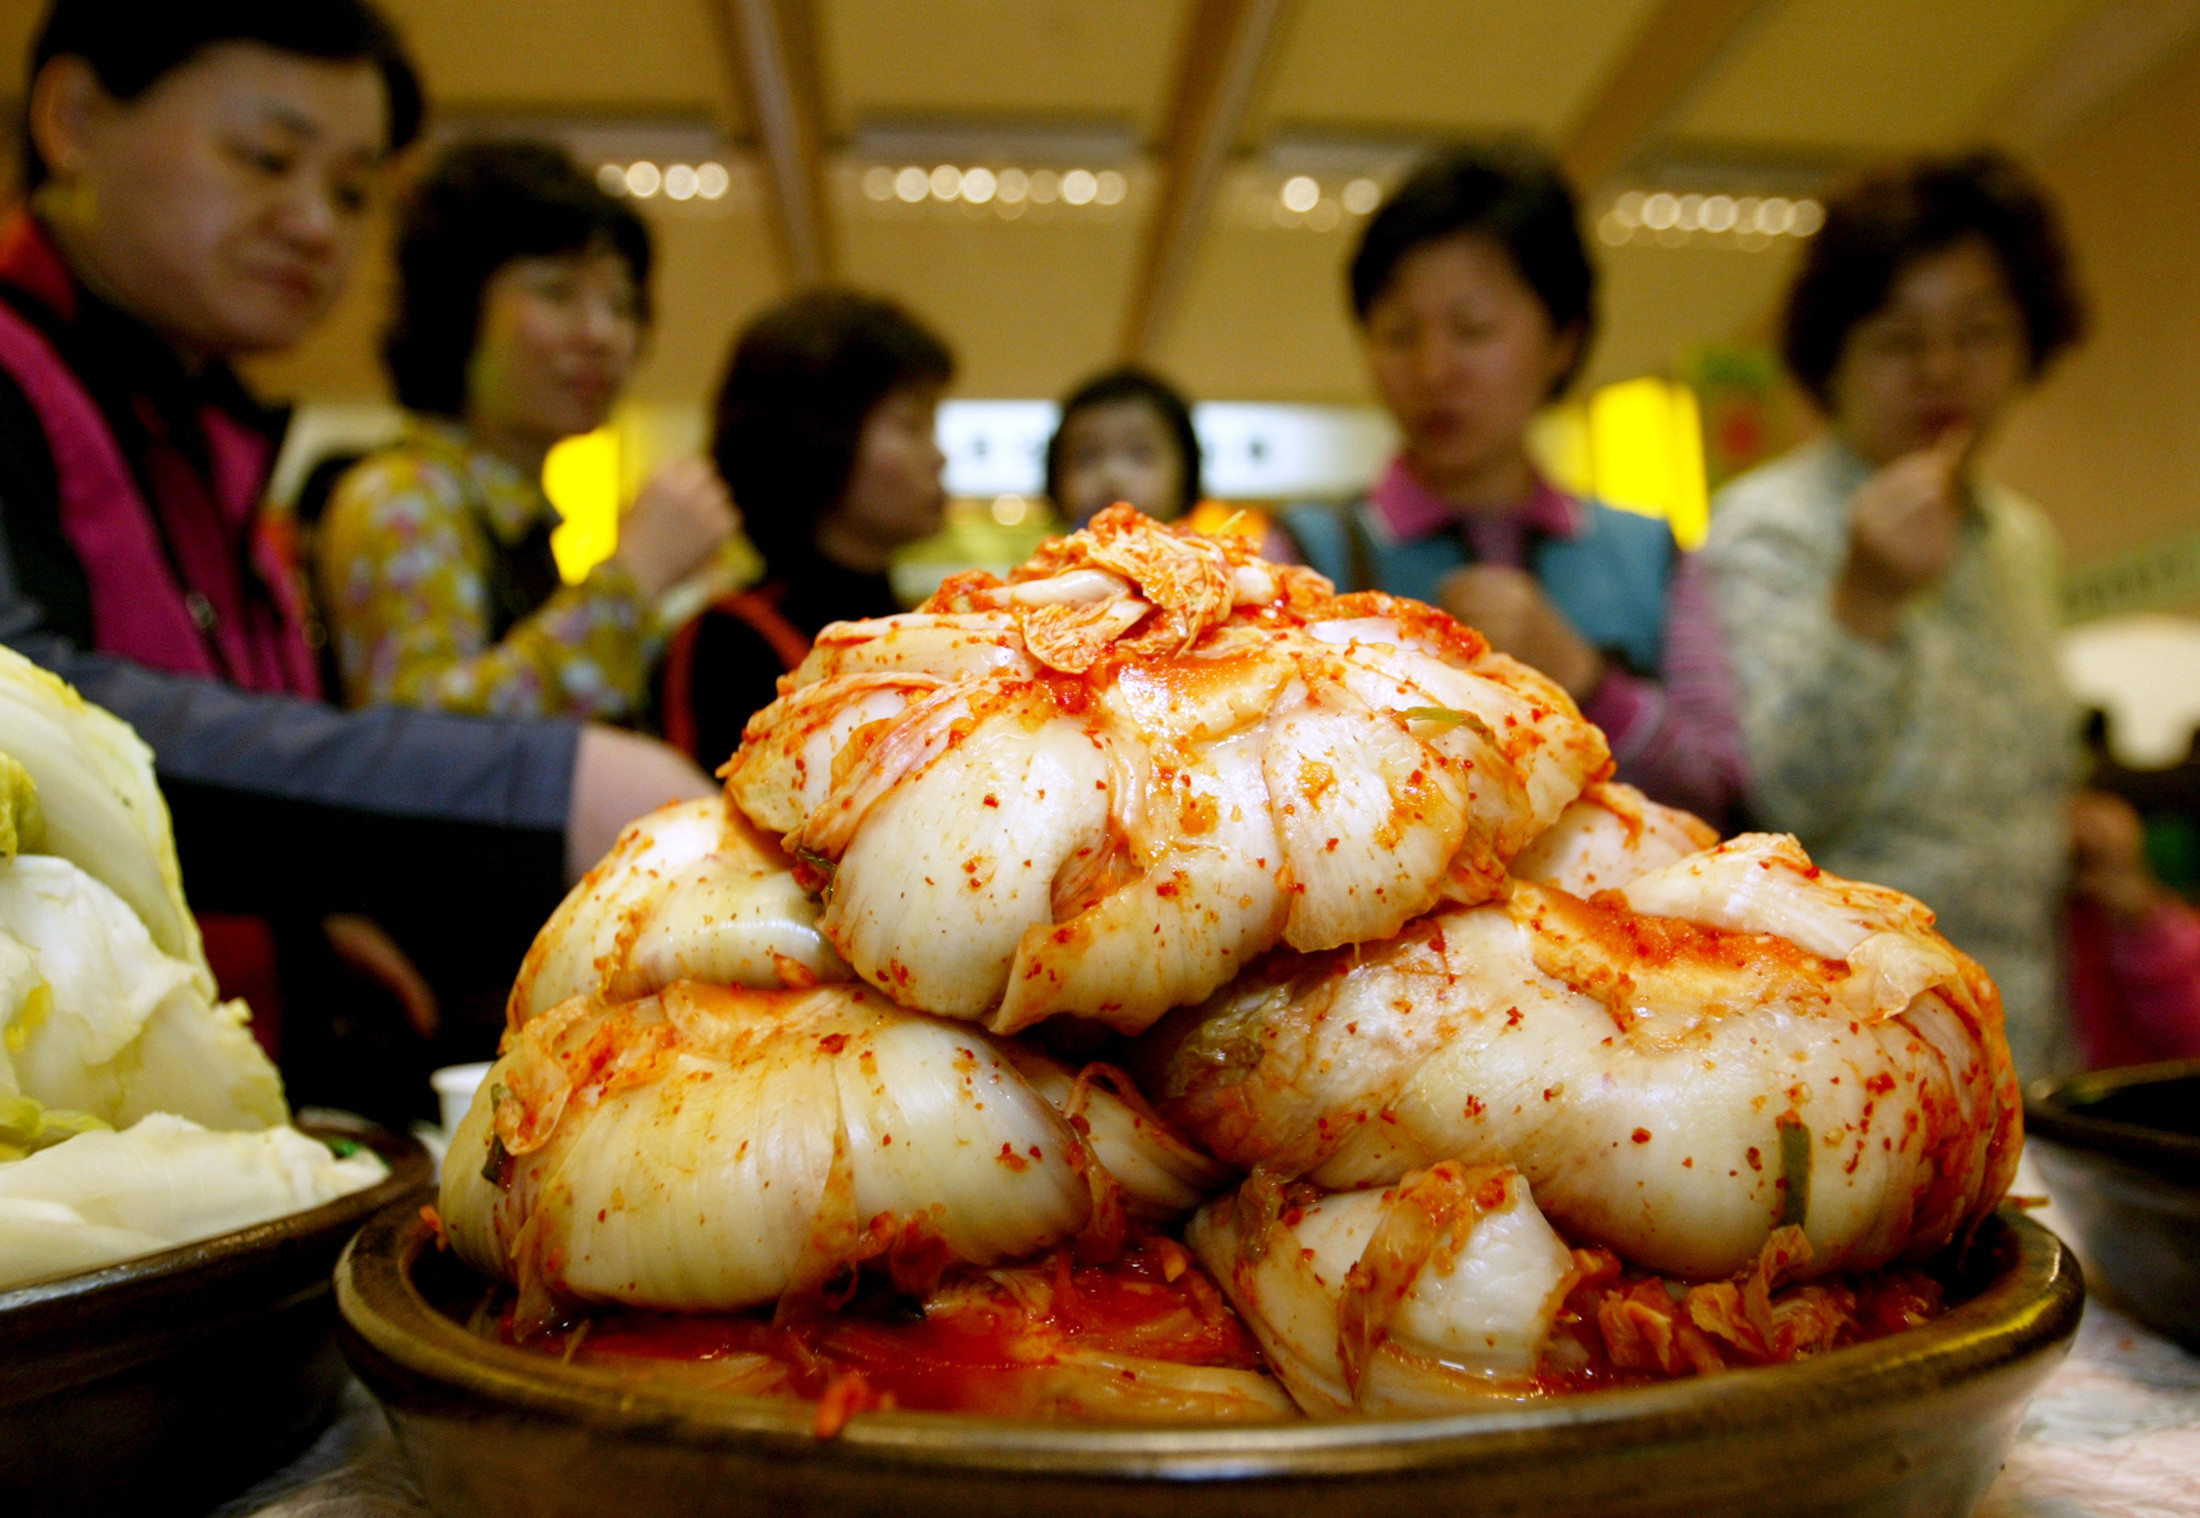 South Koreans partake in a kimchi tasting at the Kimchi Expo 2005 in Seoul, November 3, 2005. Kimchi is served at almost every meal and made in most homes. But increasing imports of the spicy cabbage from China have raised a ruckus about a foreign country eating away at the market for a national dish that is at the essence of Korean identity. For released with feature Korea-China-Kimchi. REUTERS/Kim Kyung-Hoon - RTR1AH2C